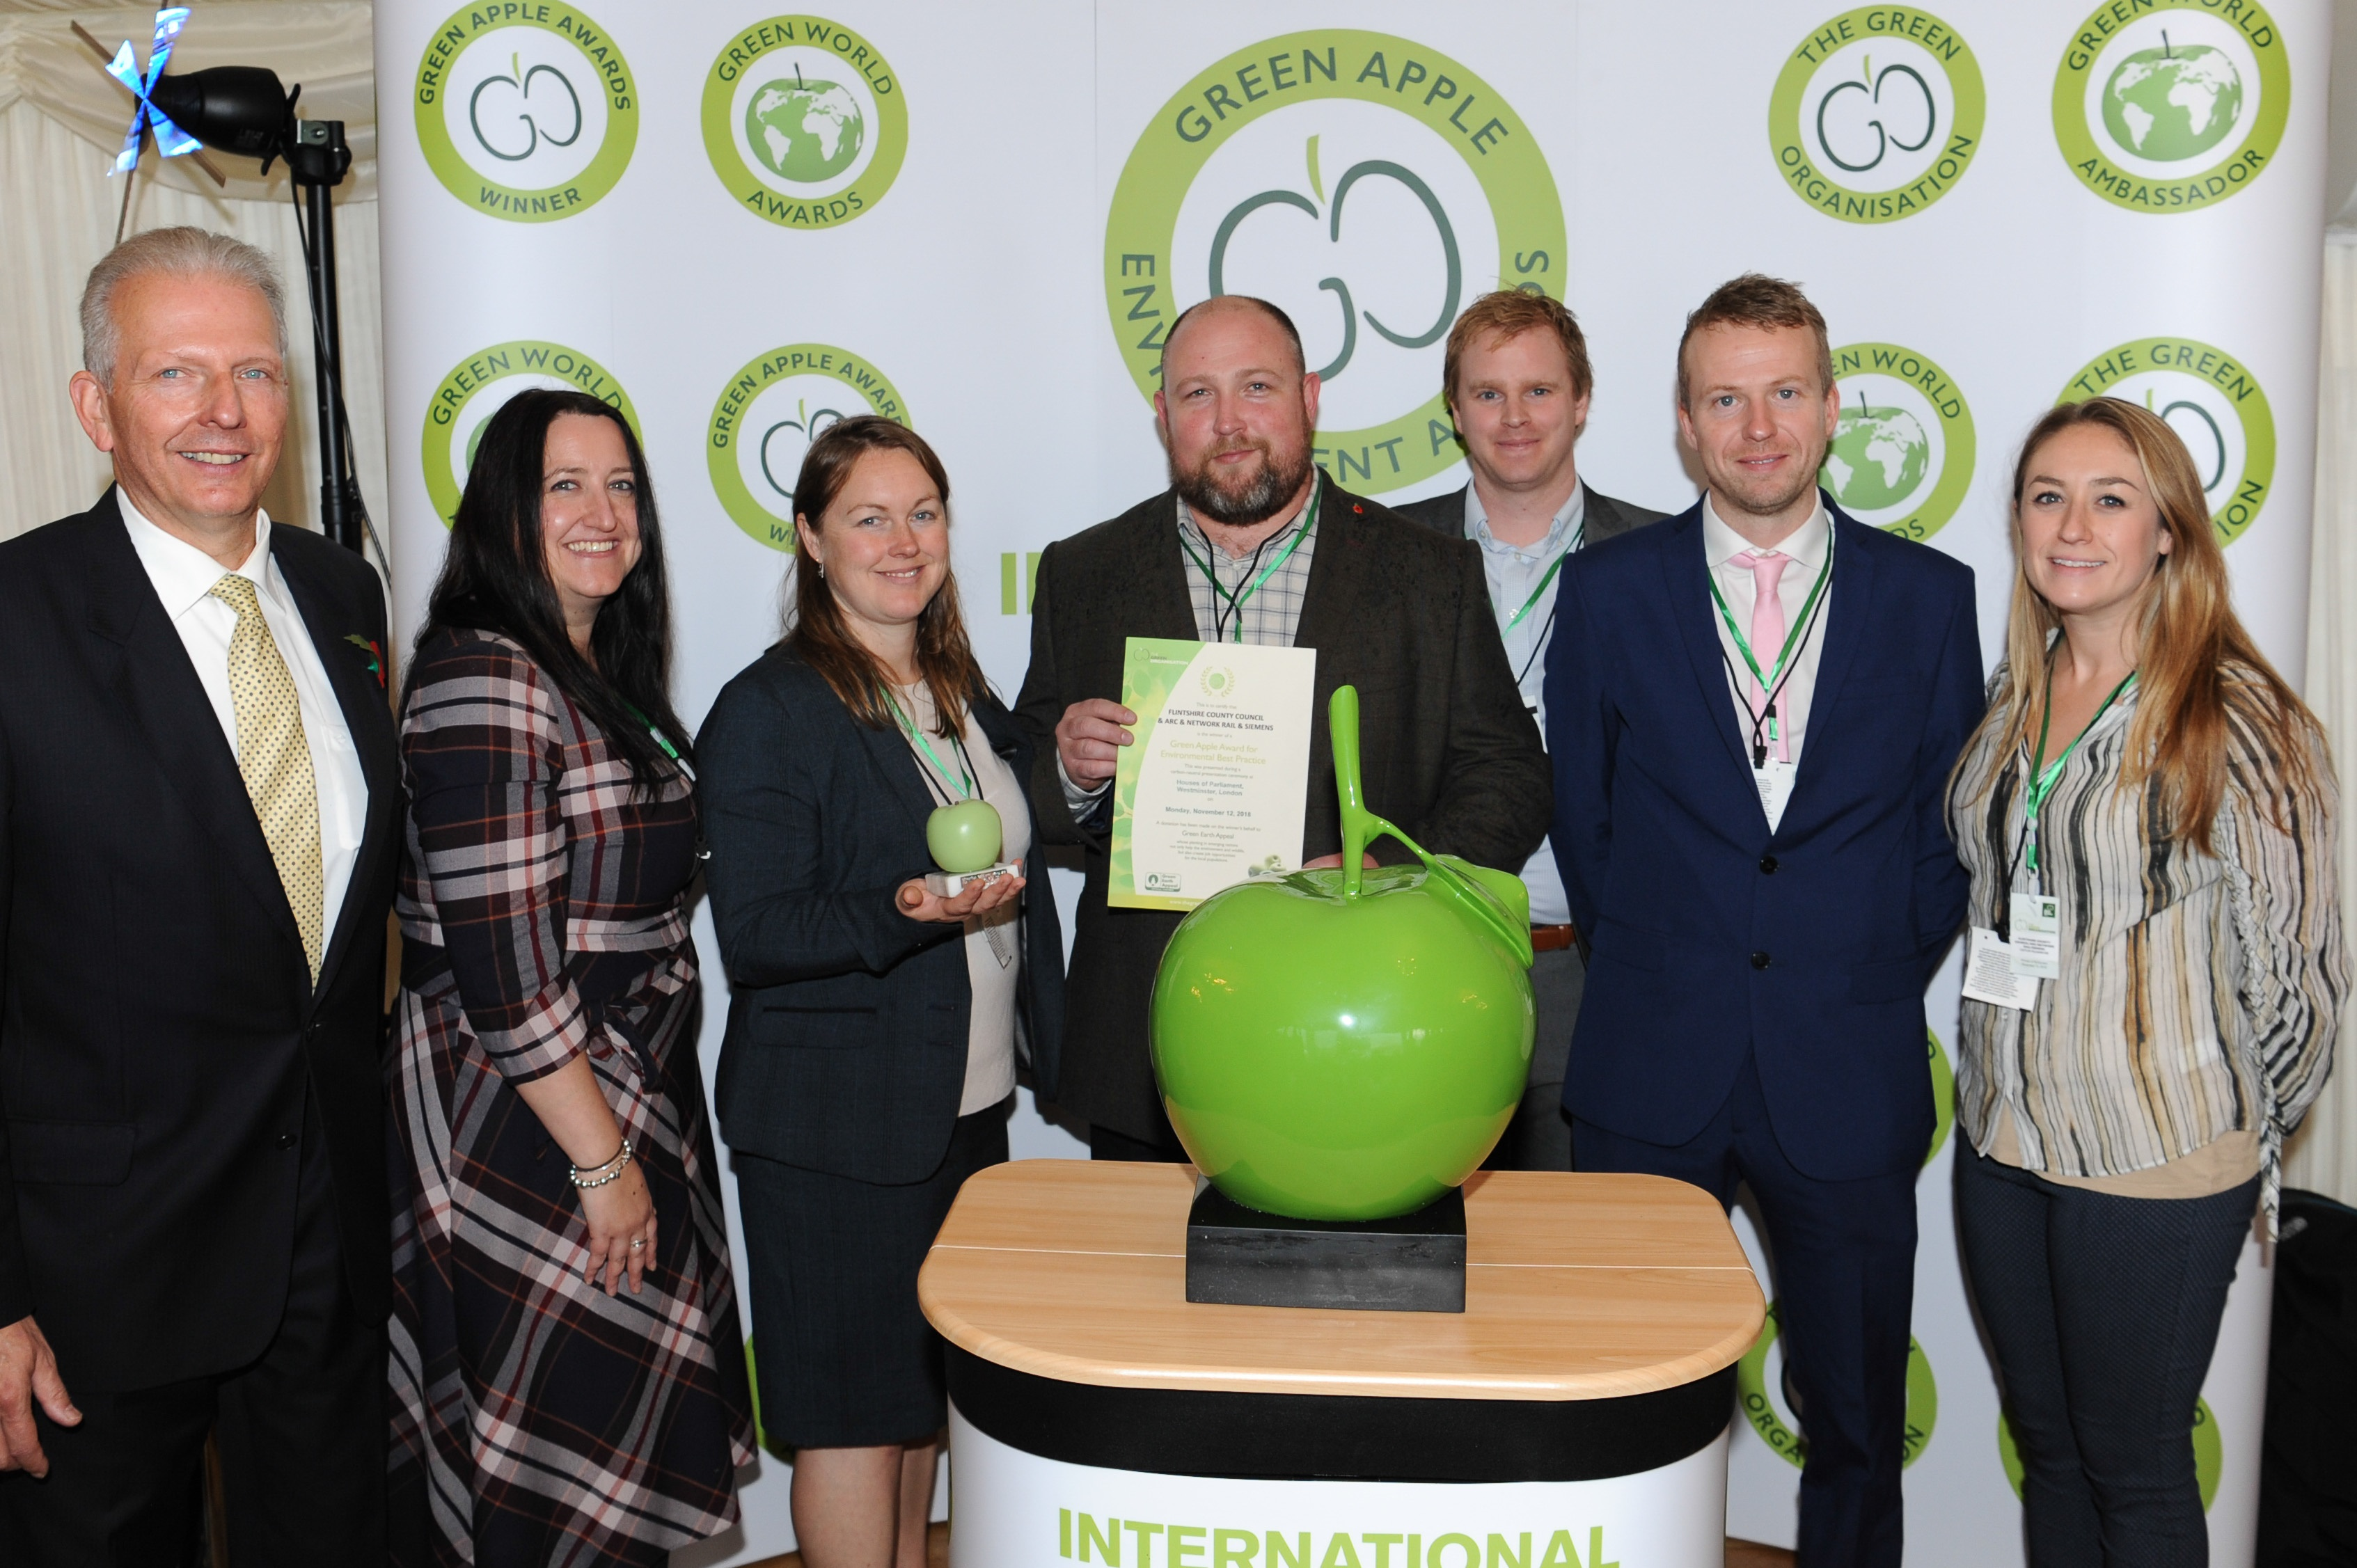 Green apple award.jpg